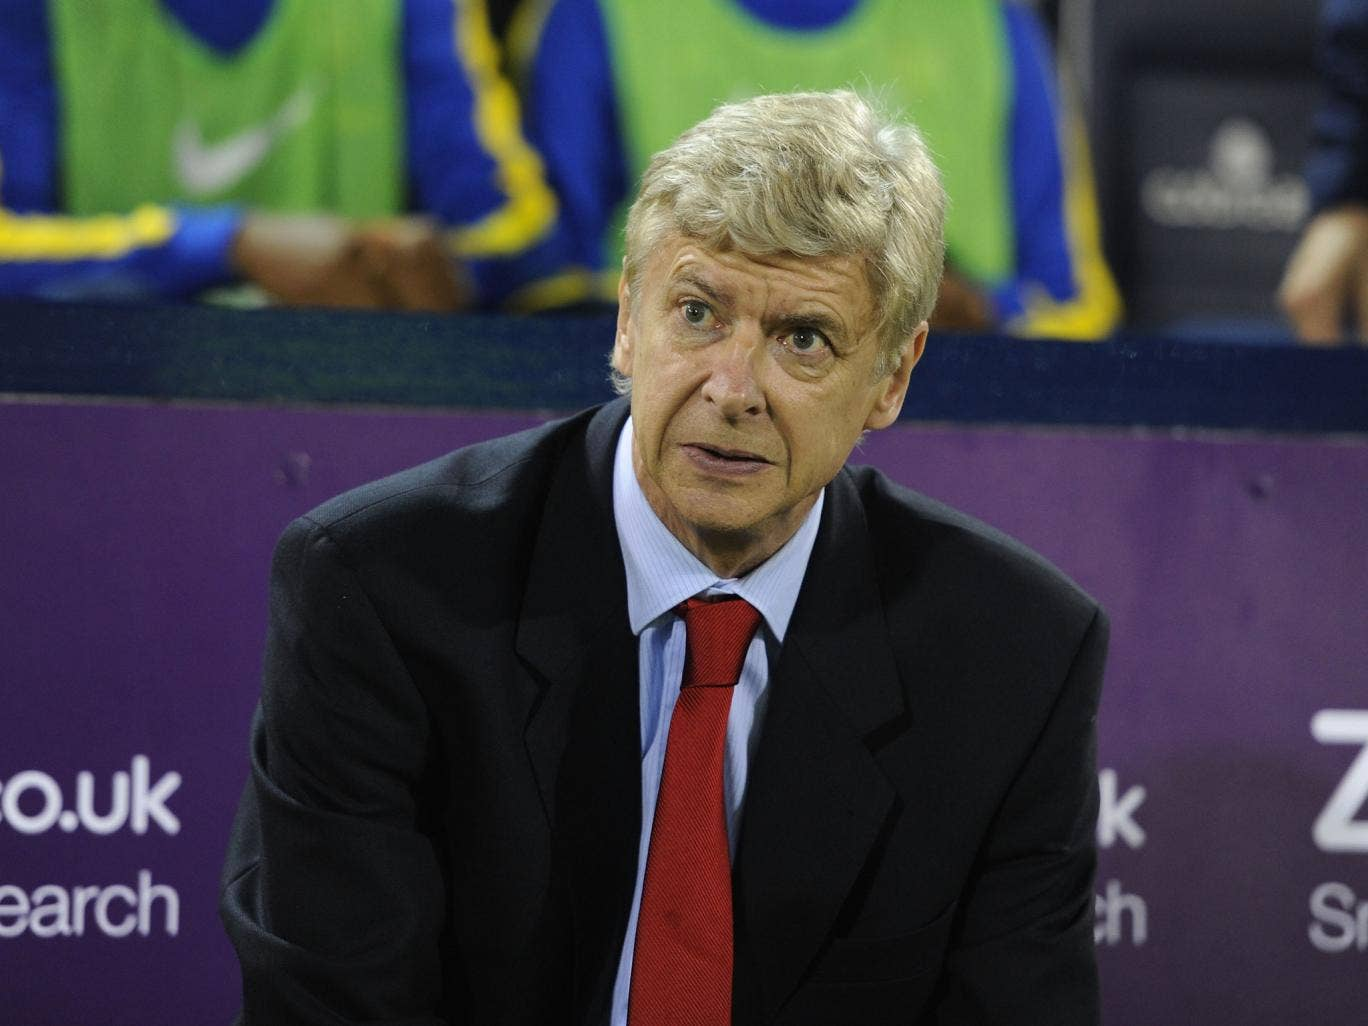 Arsene Wenger has been 'pleasantly surprised' by Arsenal's strong start to the season